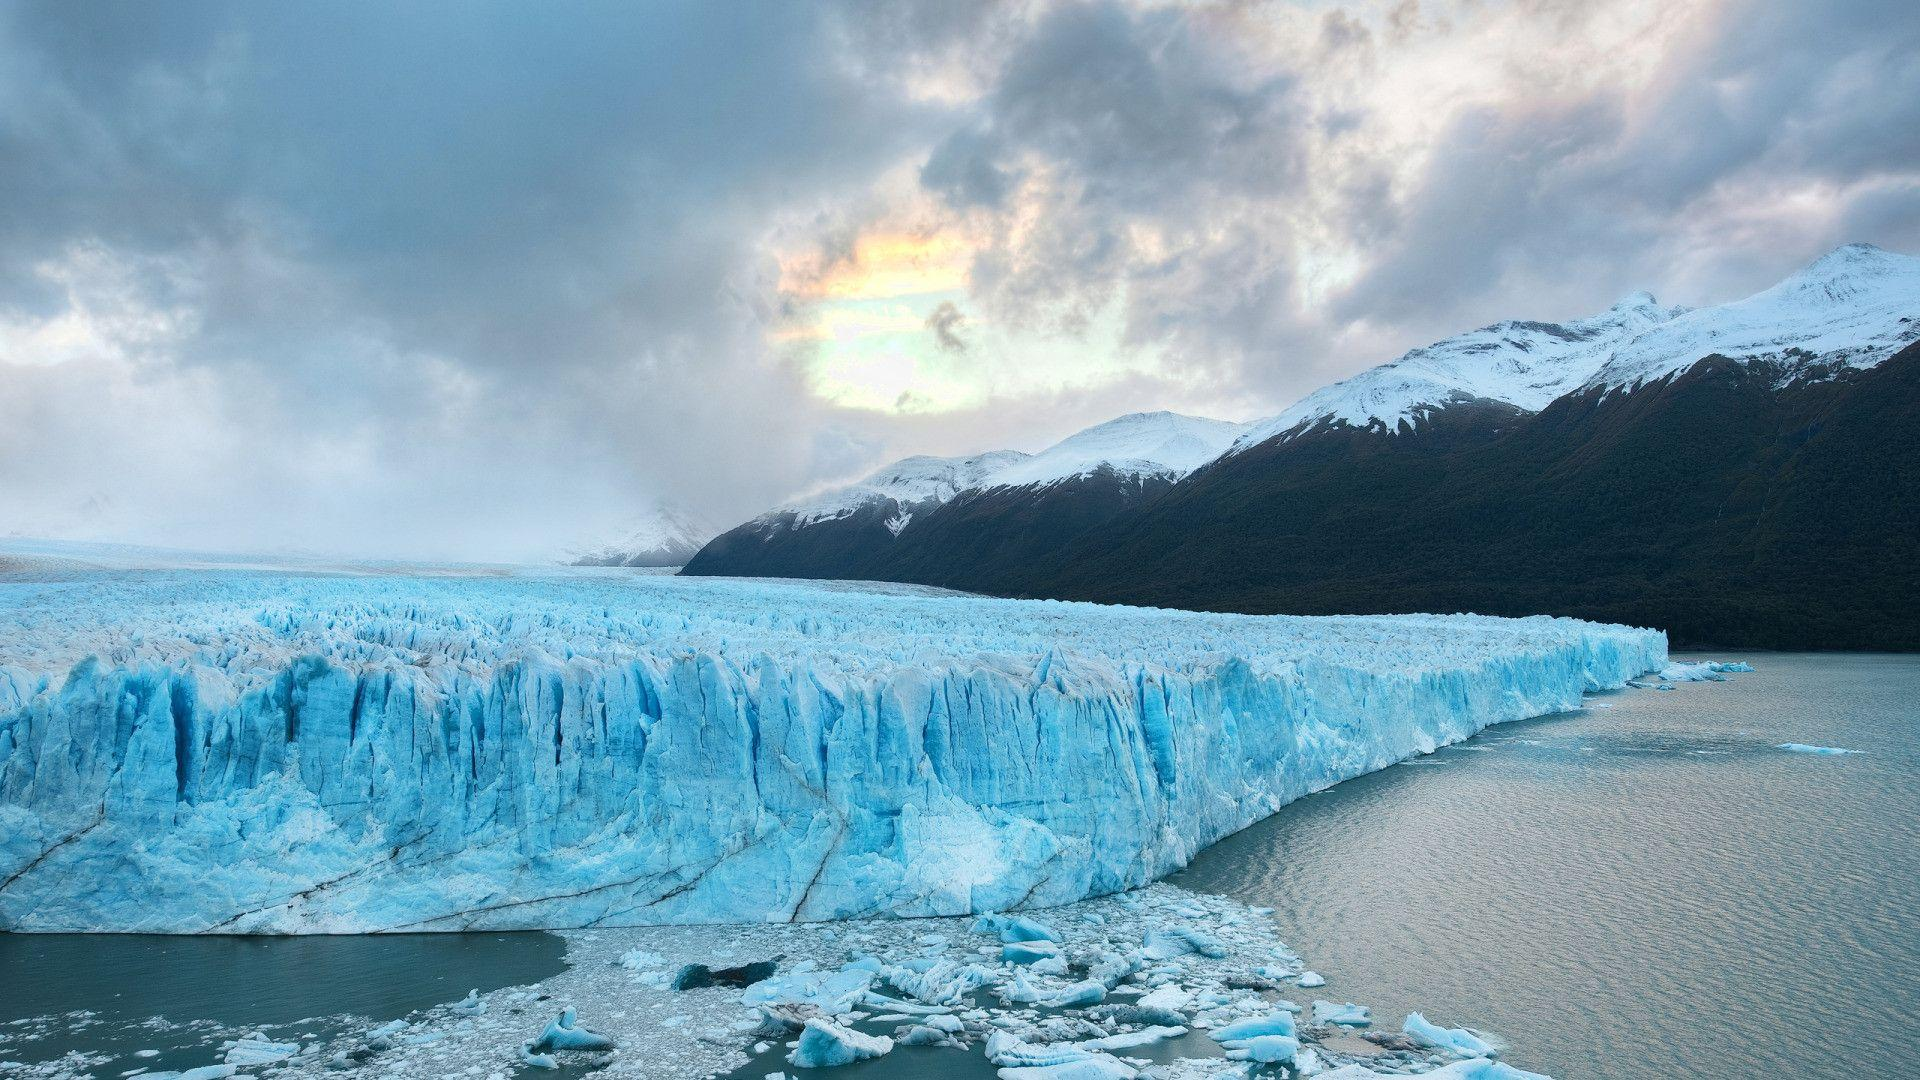 Deep into the Patagonia Glacier widescreen wallpapers